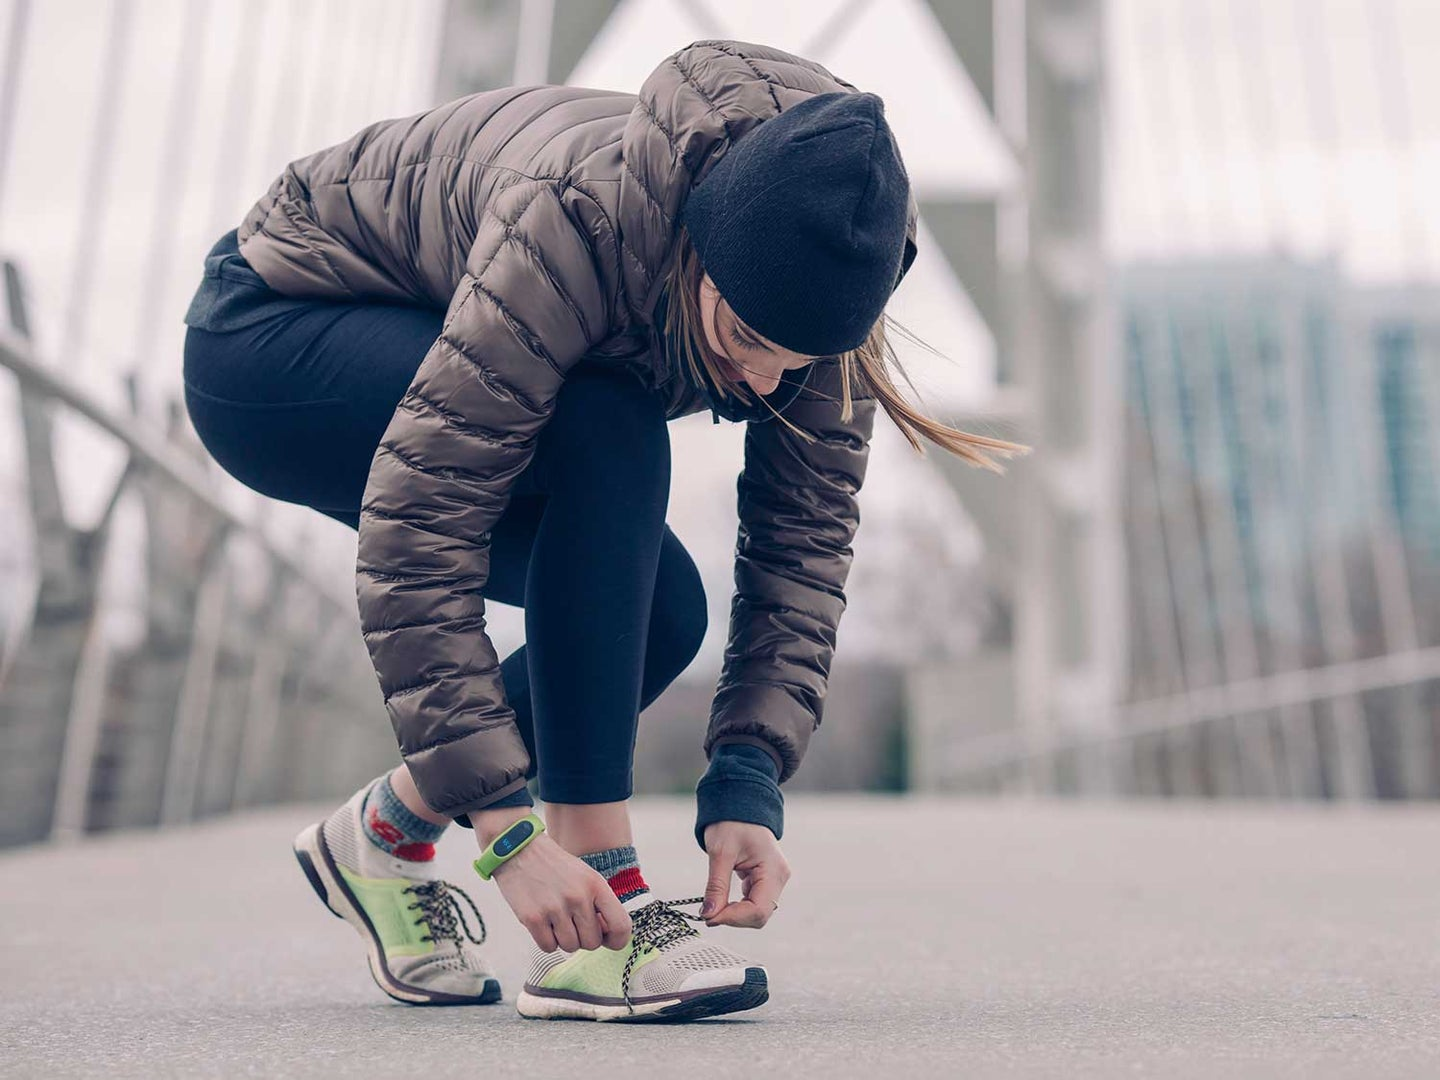 Woman ties running shoes